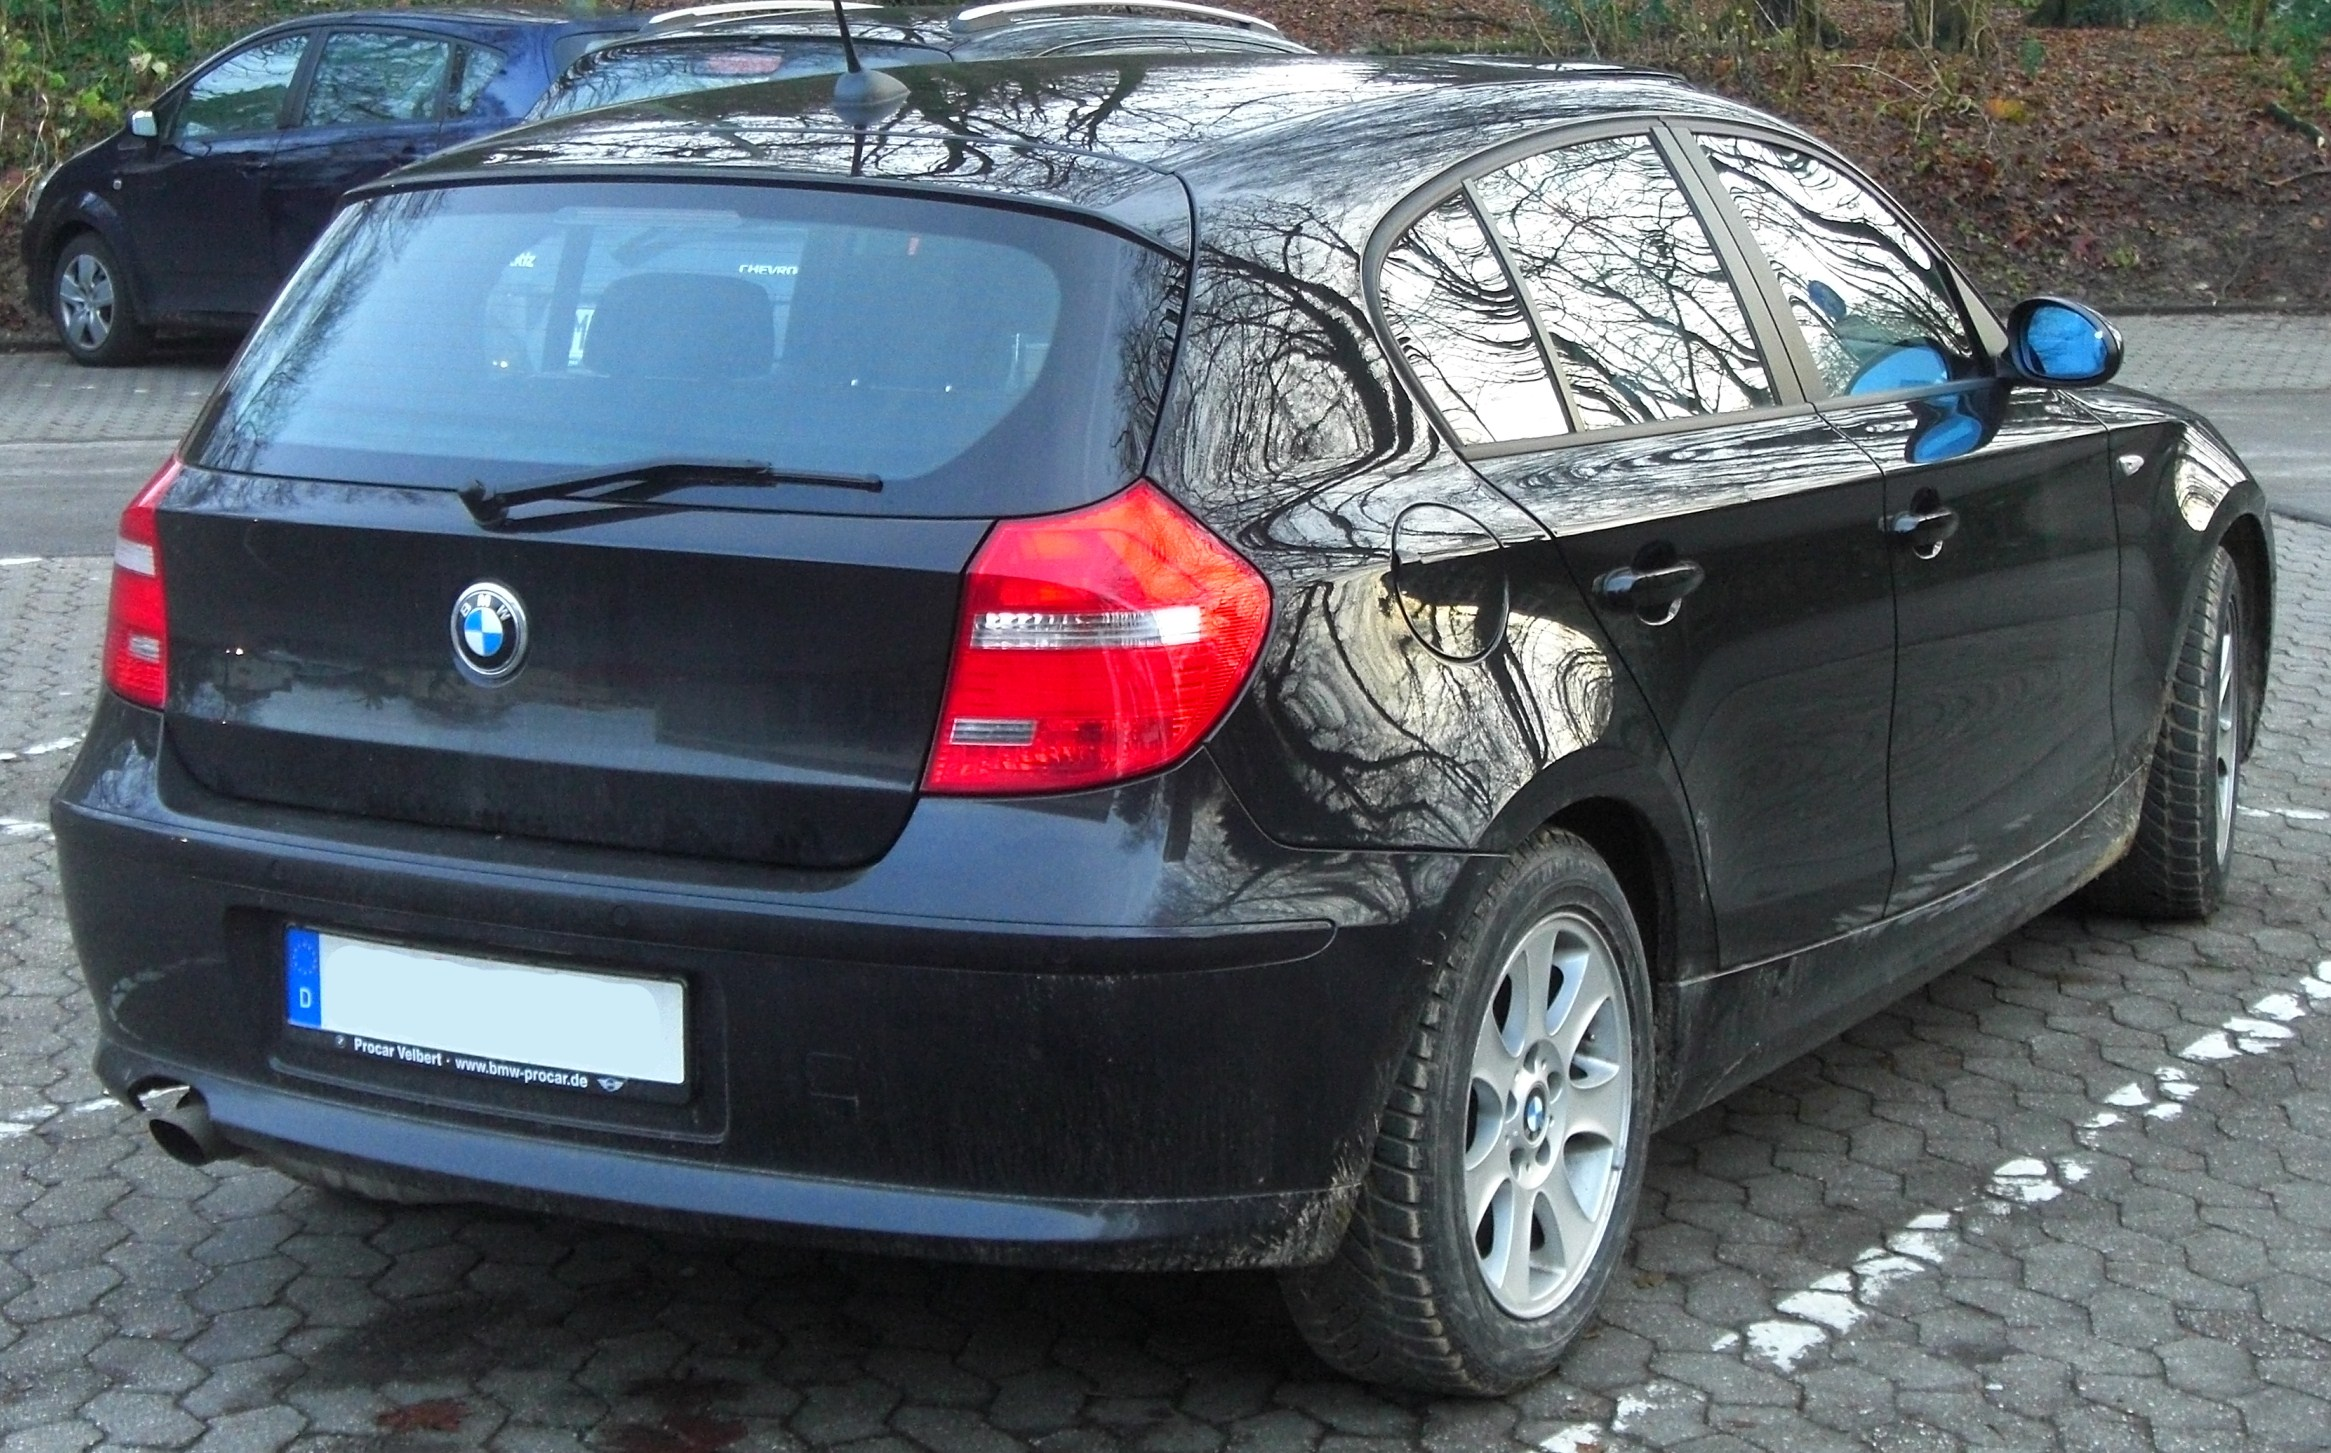 file bmw 1er e87 facelift seit 2007 rear mj jpg wikimedia commons. Black Bedroom Furniture Sets. Home Design Ideas